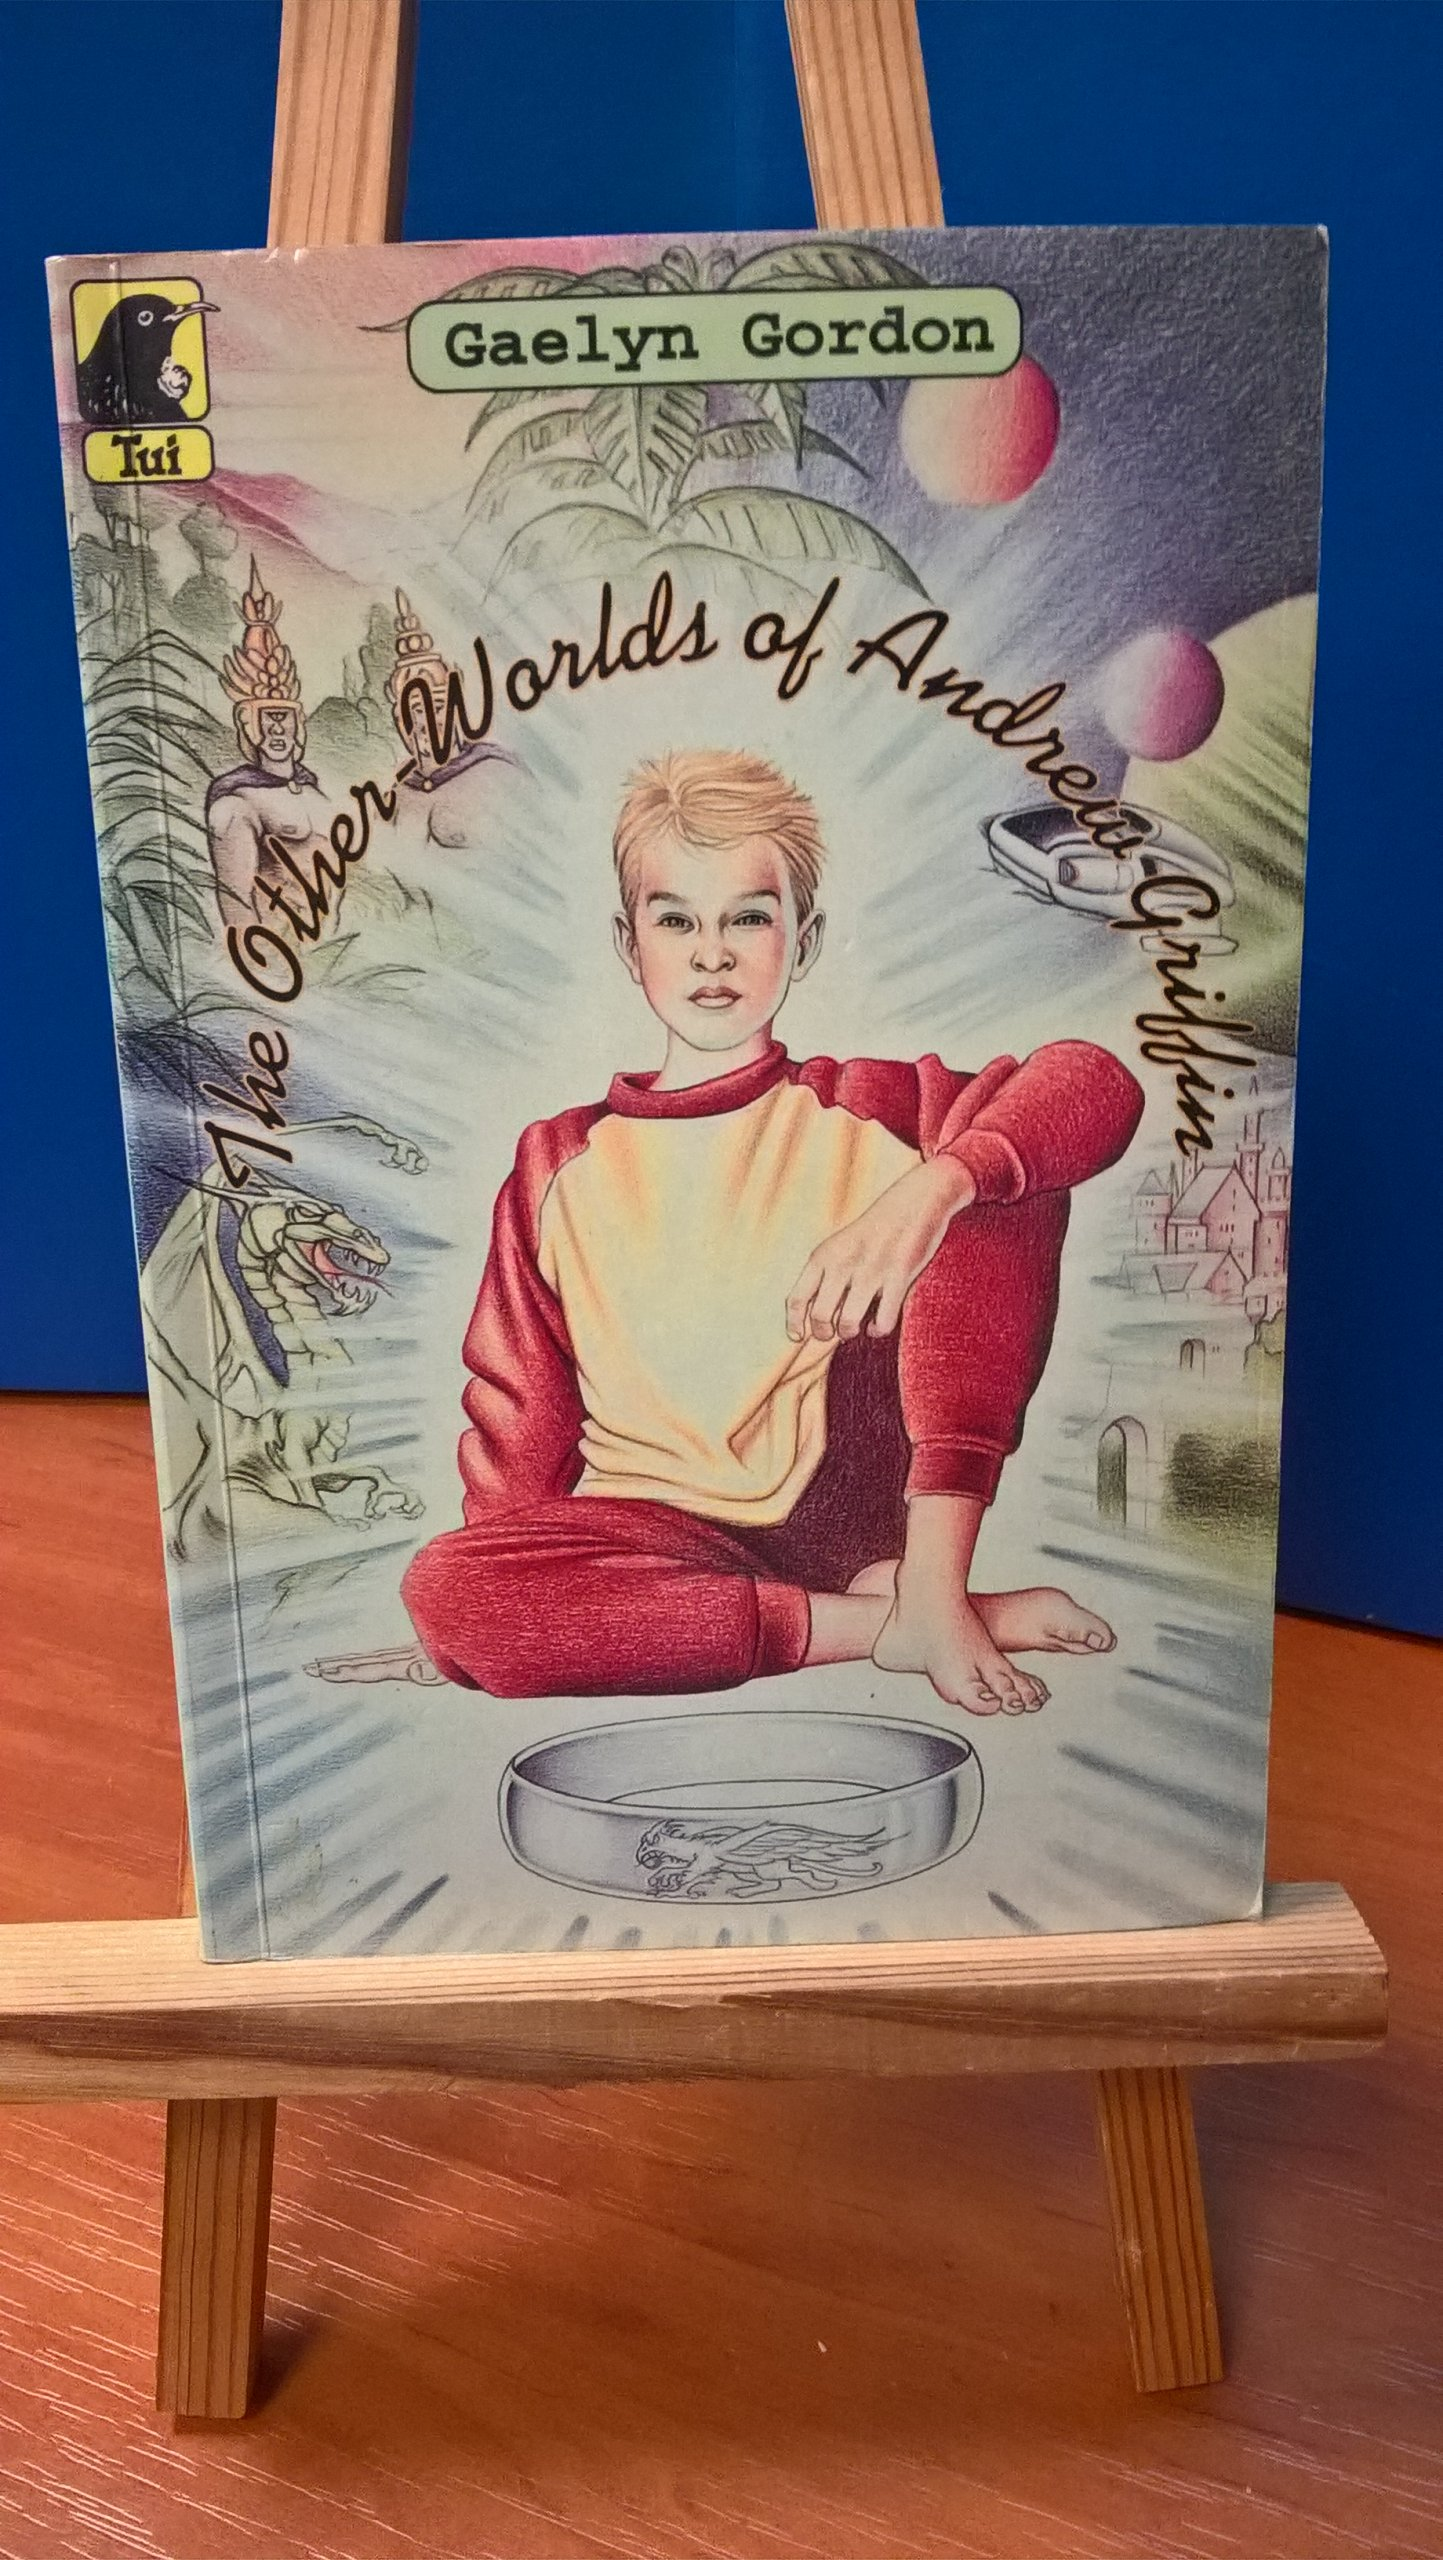 The other worlds of Andrew Griffin - Gaelyn Gordon